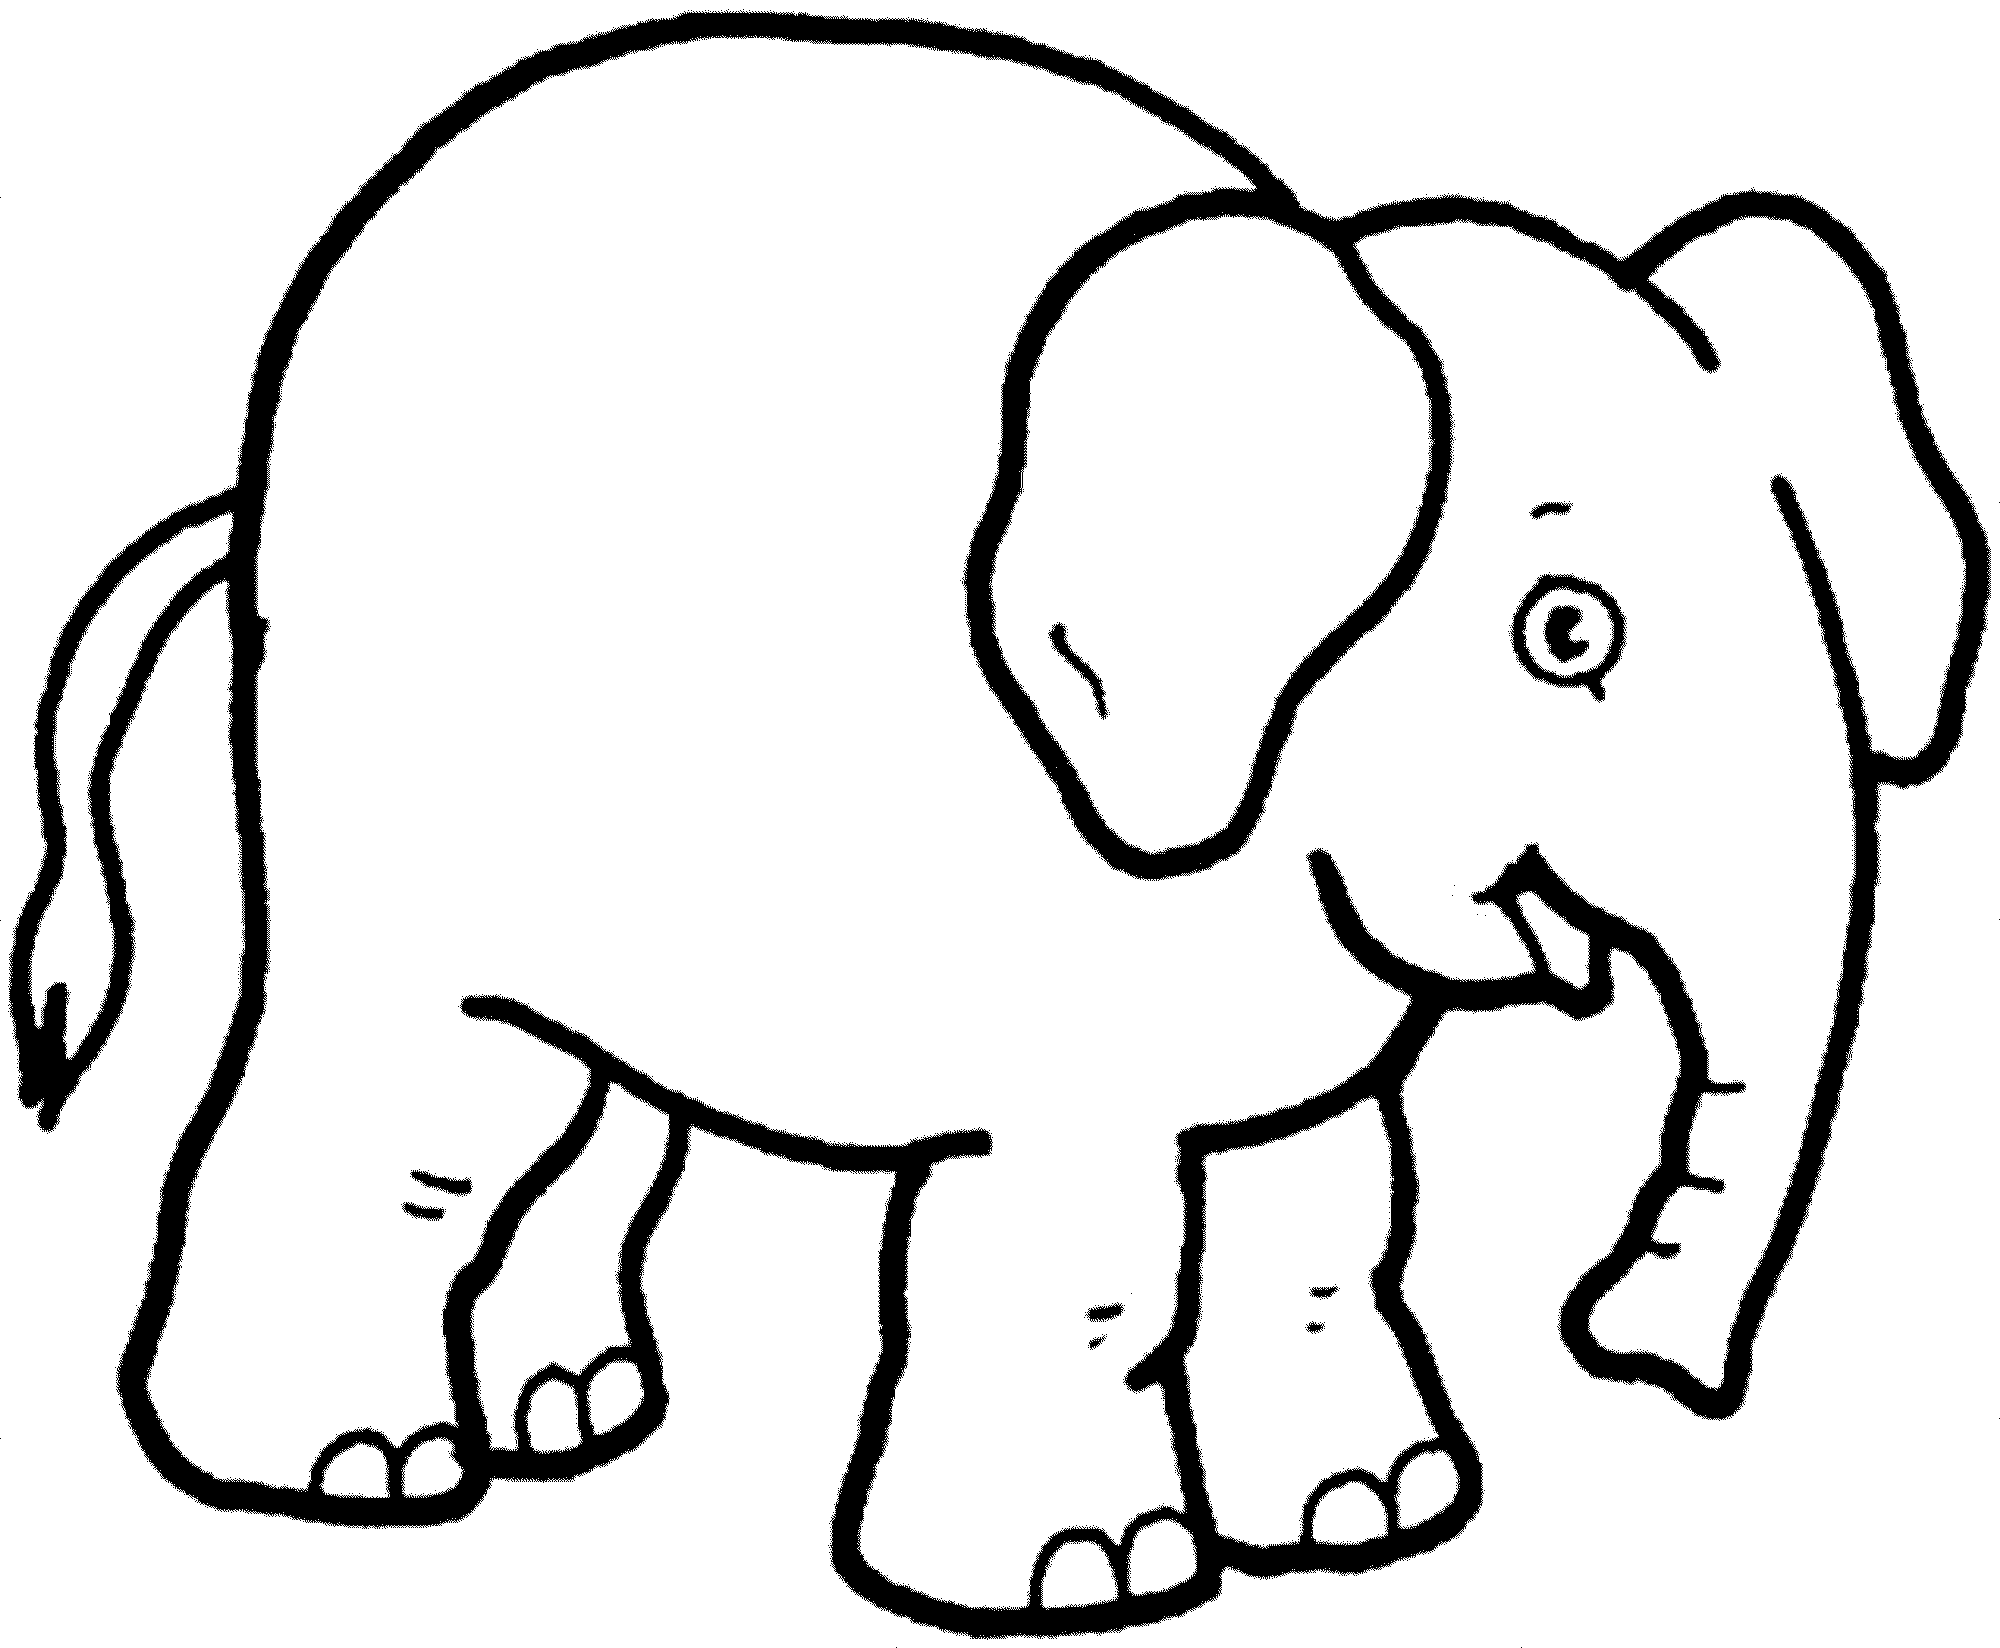 elephant coloring picture elephant coloring page bestappsforkidscom coloring elephant picture